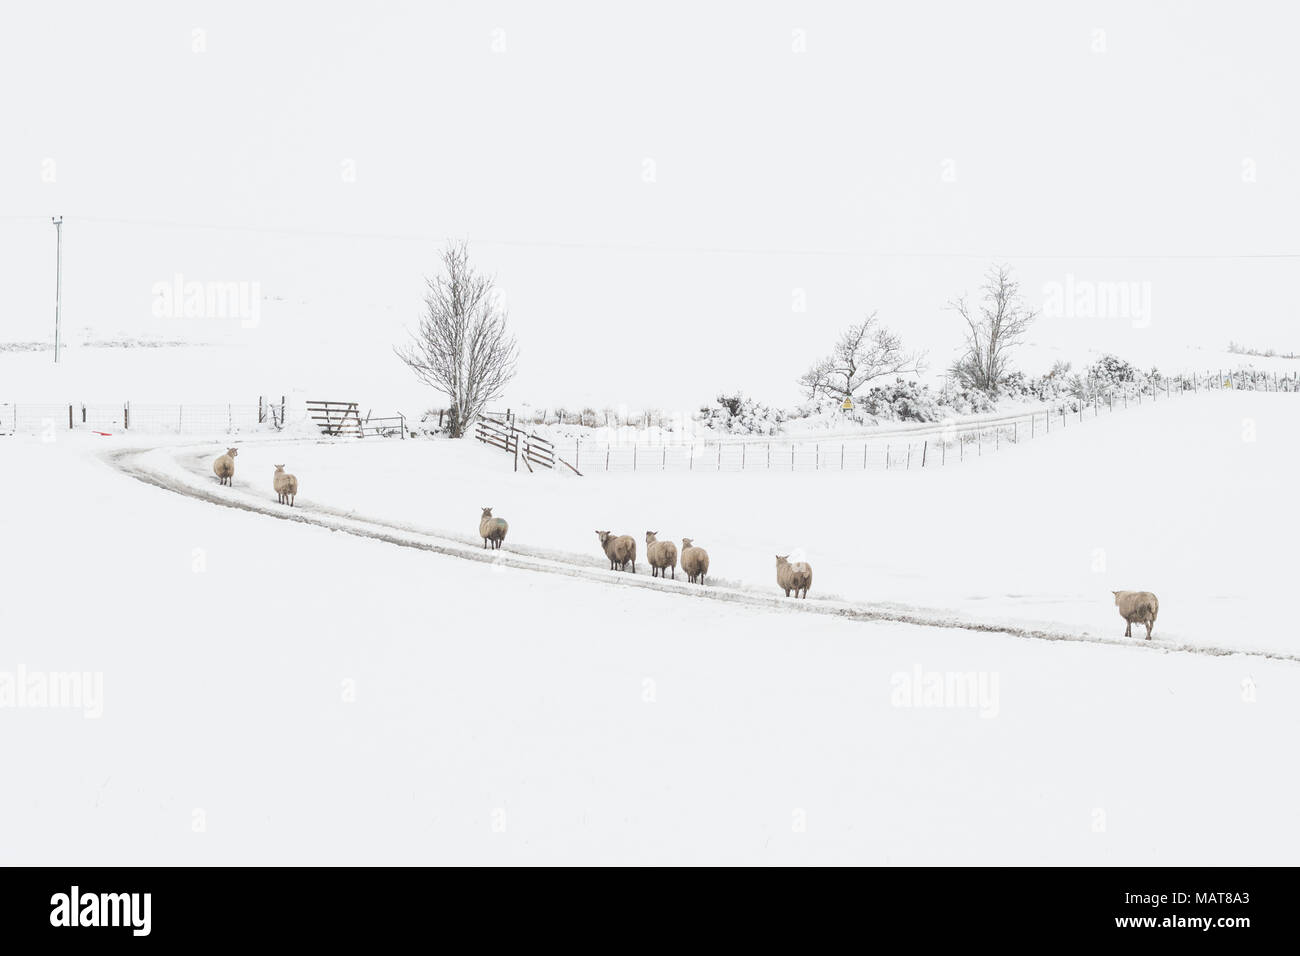 Stirlingshire, Scotland, UK - 4 April 2018: UK weather - it's not feeling like spring in Stirlingshire this morning Credit: Kay Roxby/Alamy Live News - Stock Image